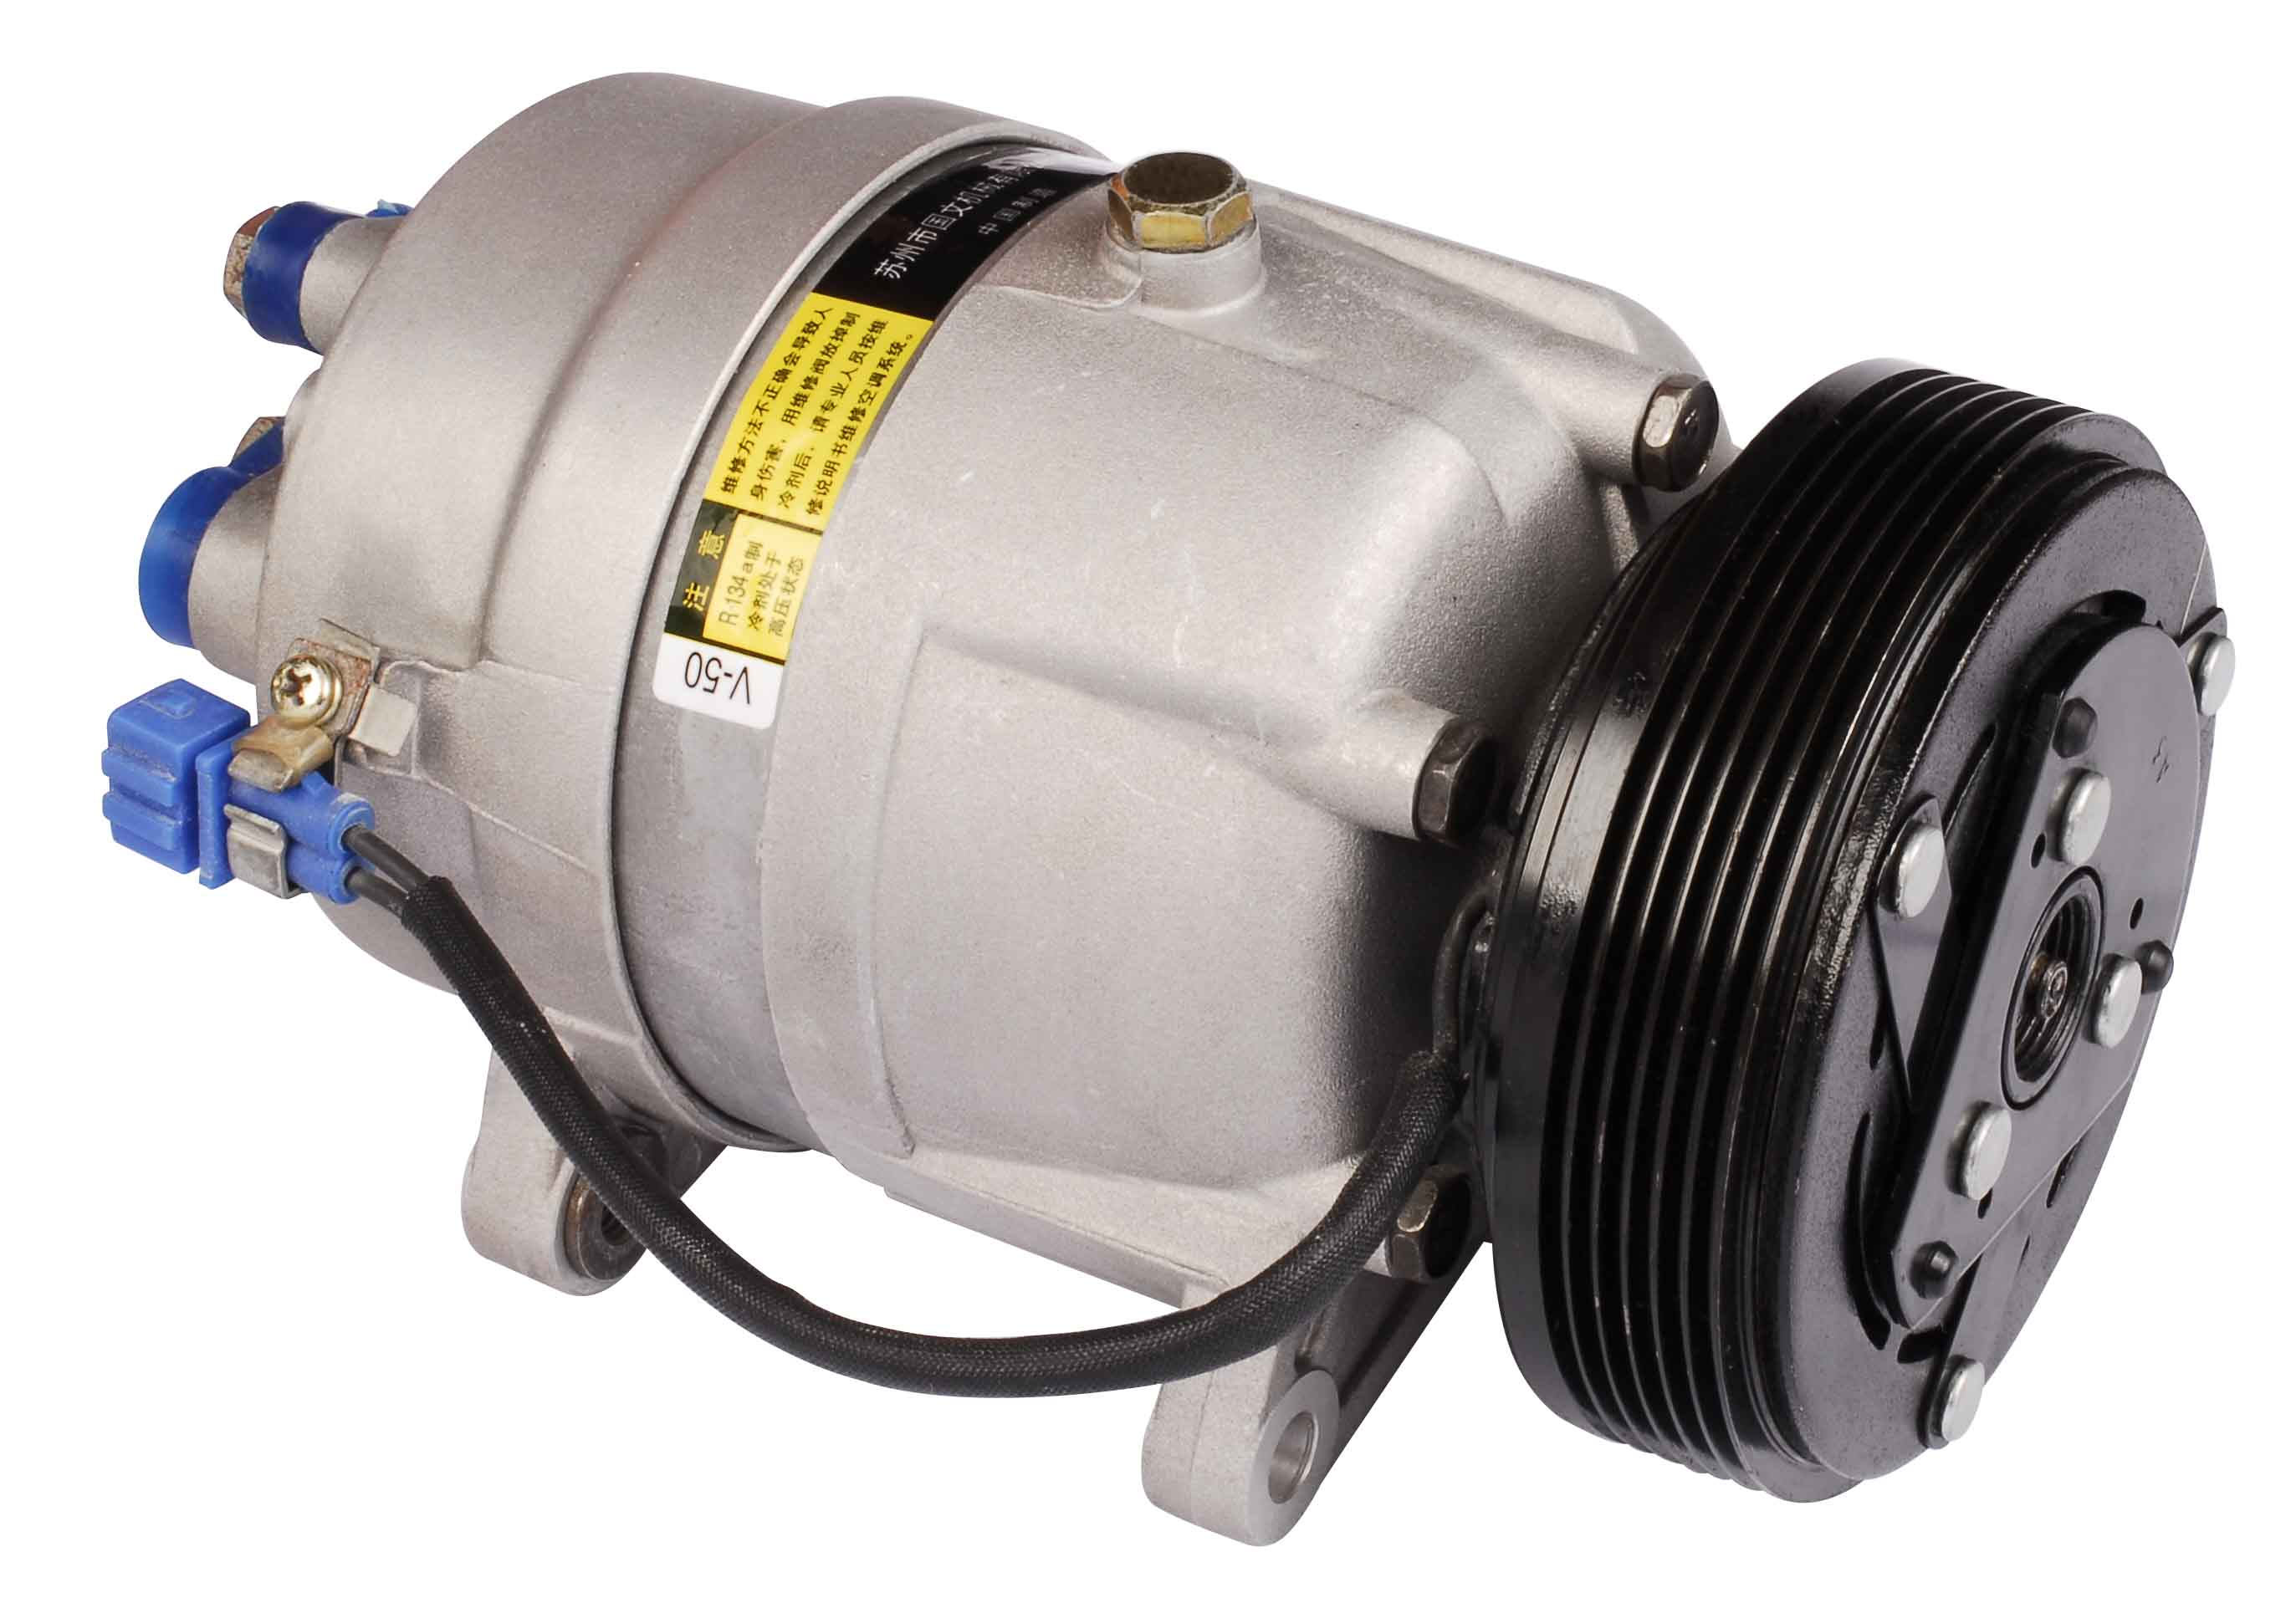 What Is The Air Conditioner Compressor?